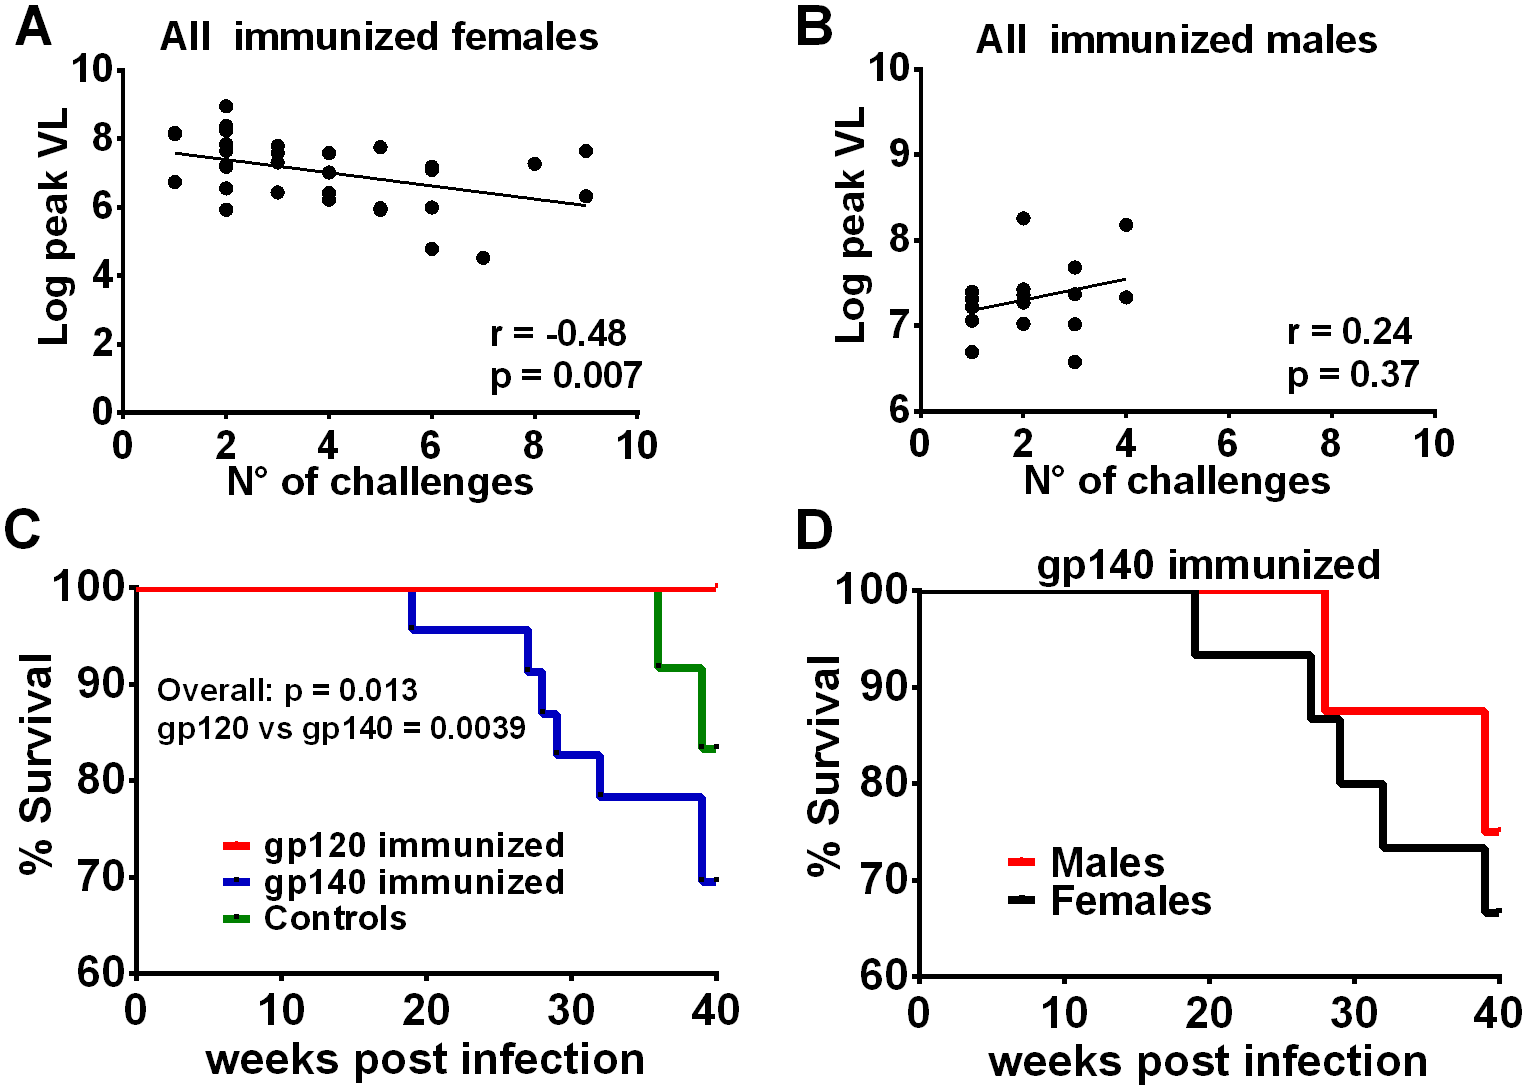 Additional post-infection outcomes by immunization group and sex.